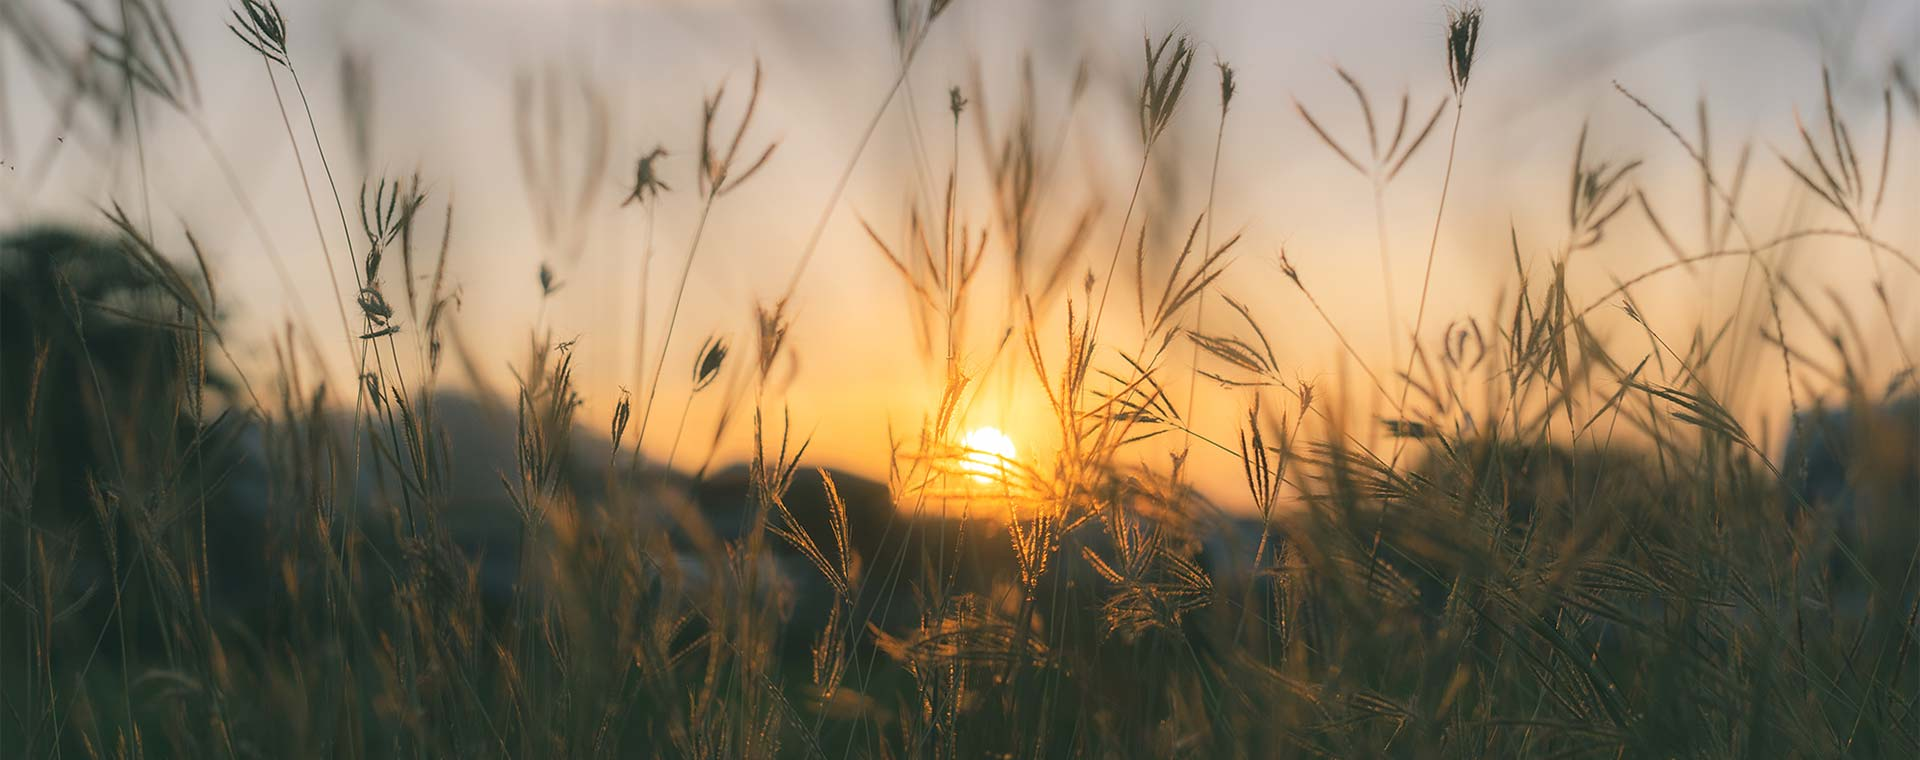 A close up of prairie grasses, with the sun rising in the background.